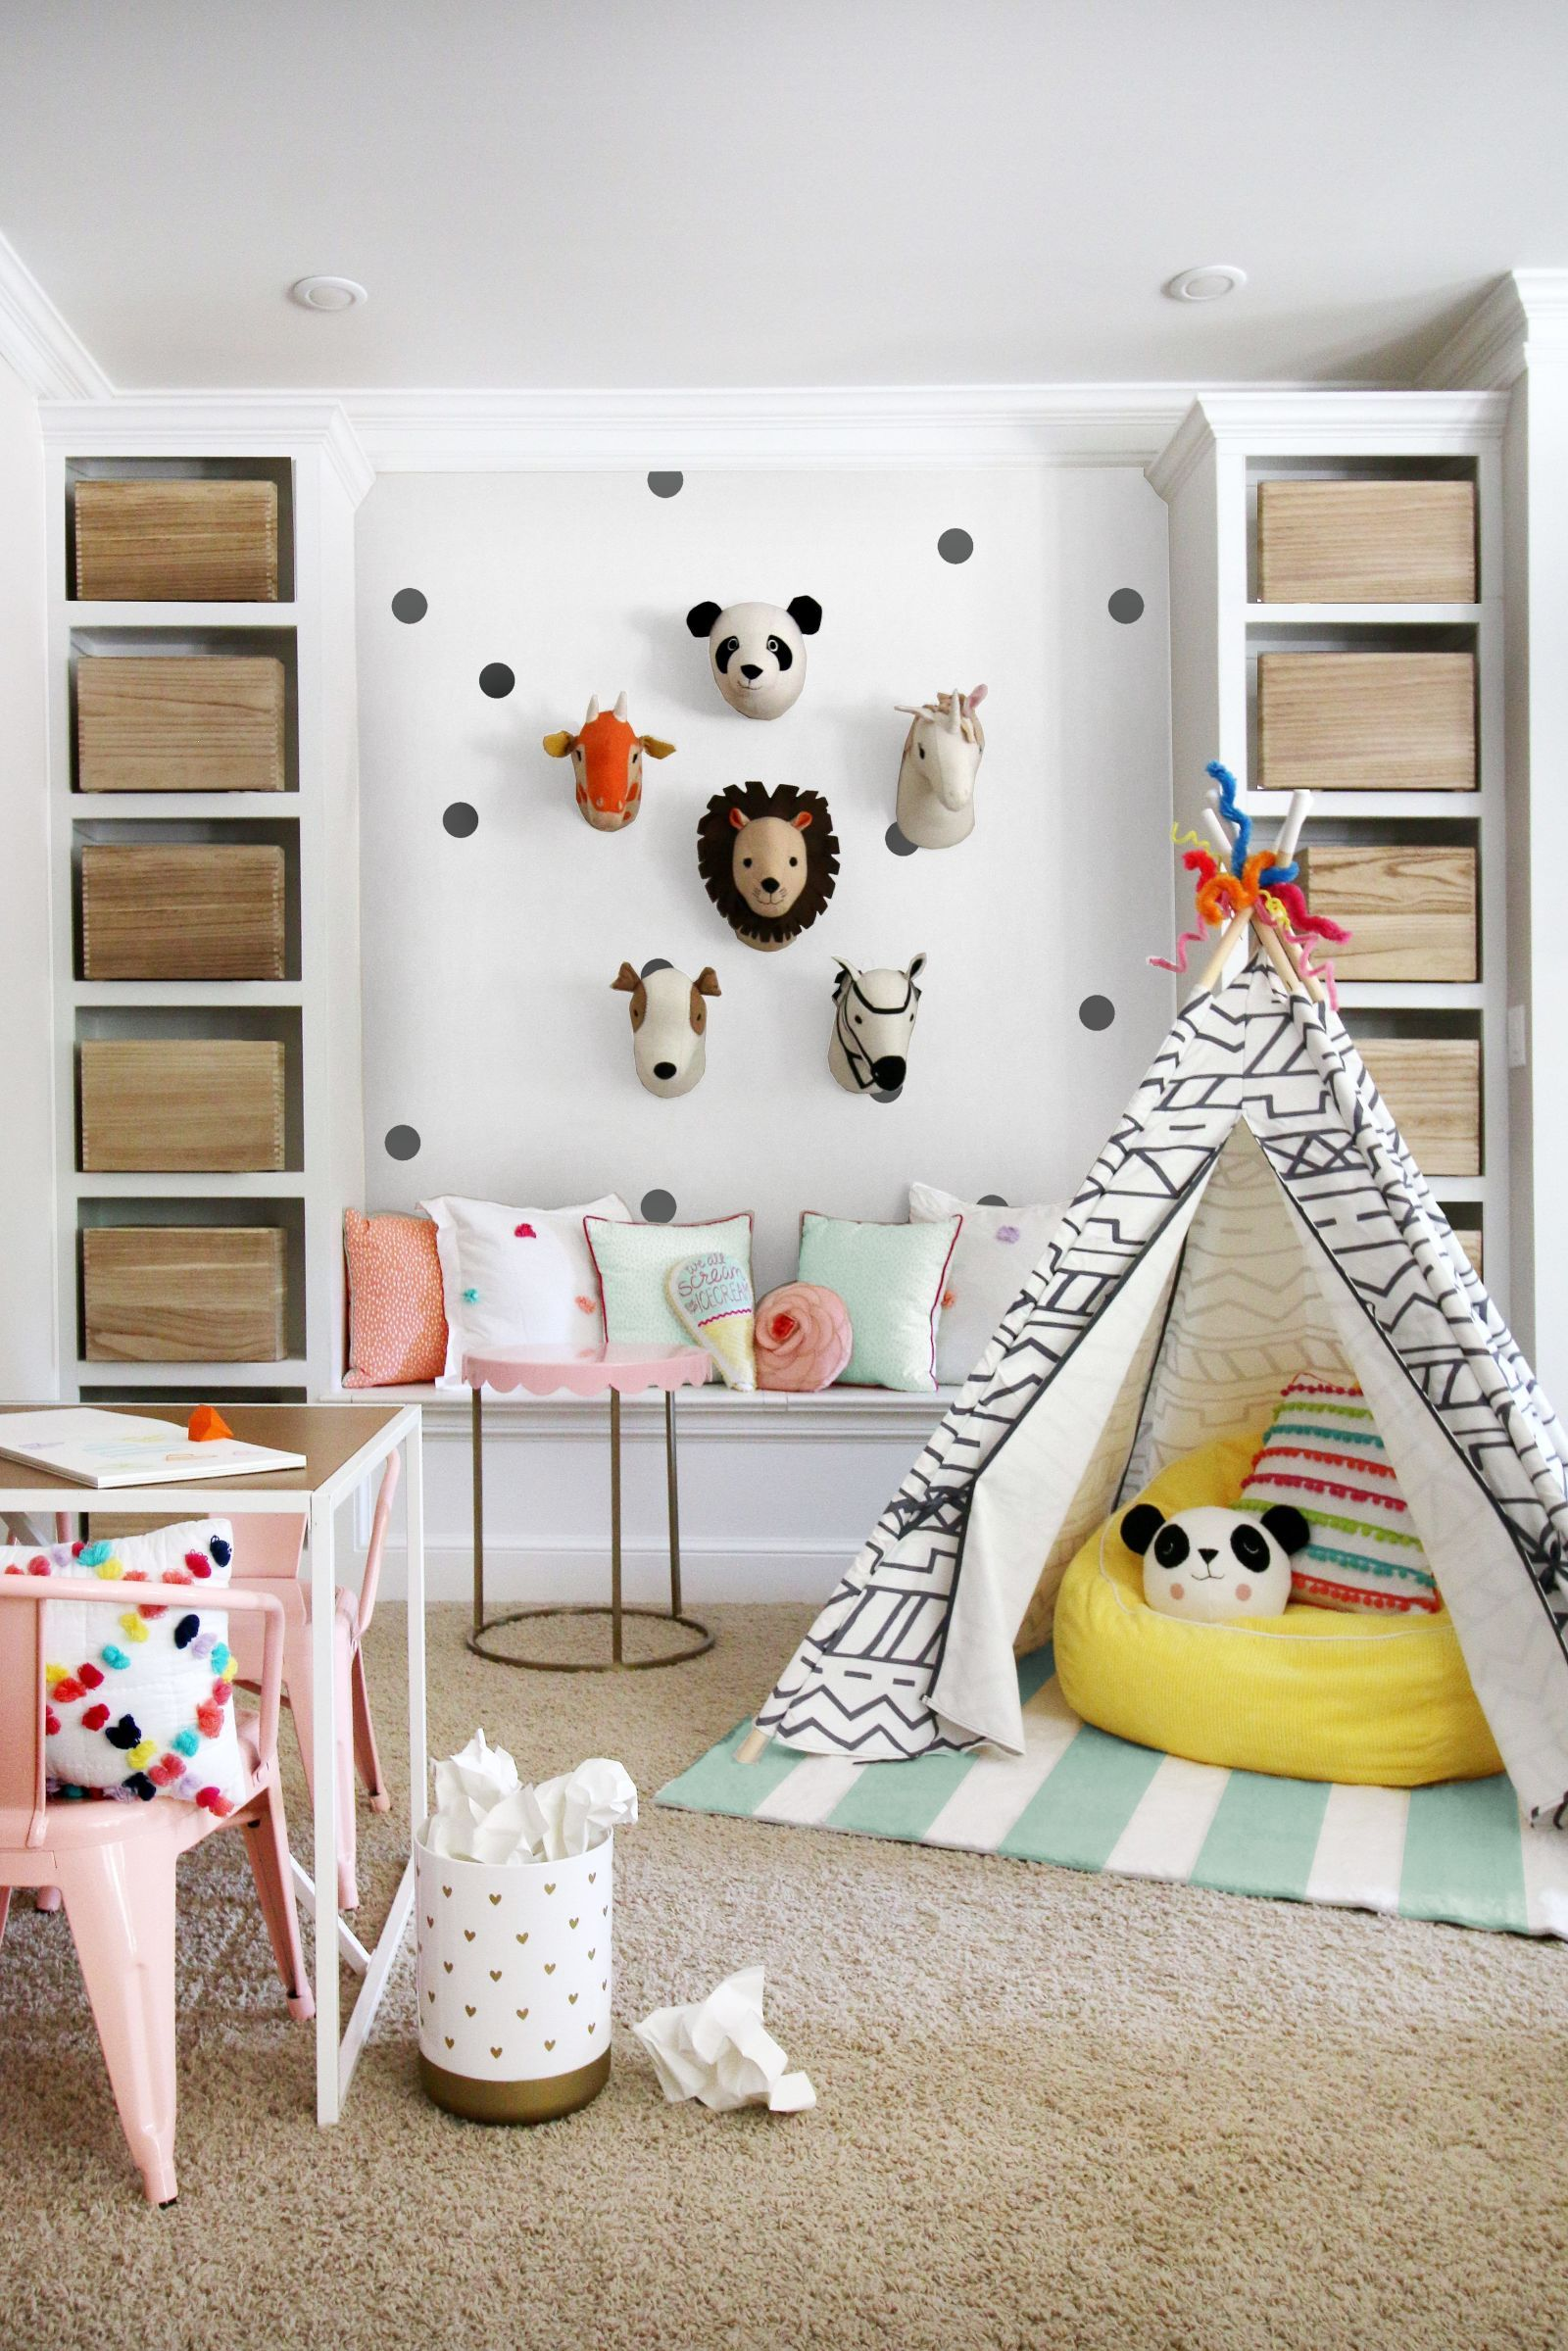 6 Totally Fresh Decorating Ideas For The Kids' Playroom | Interior